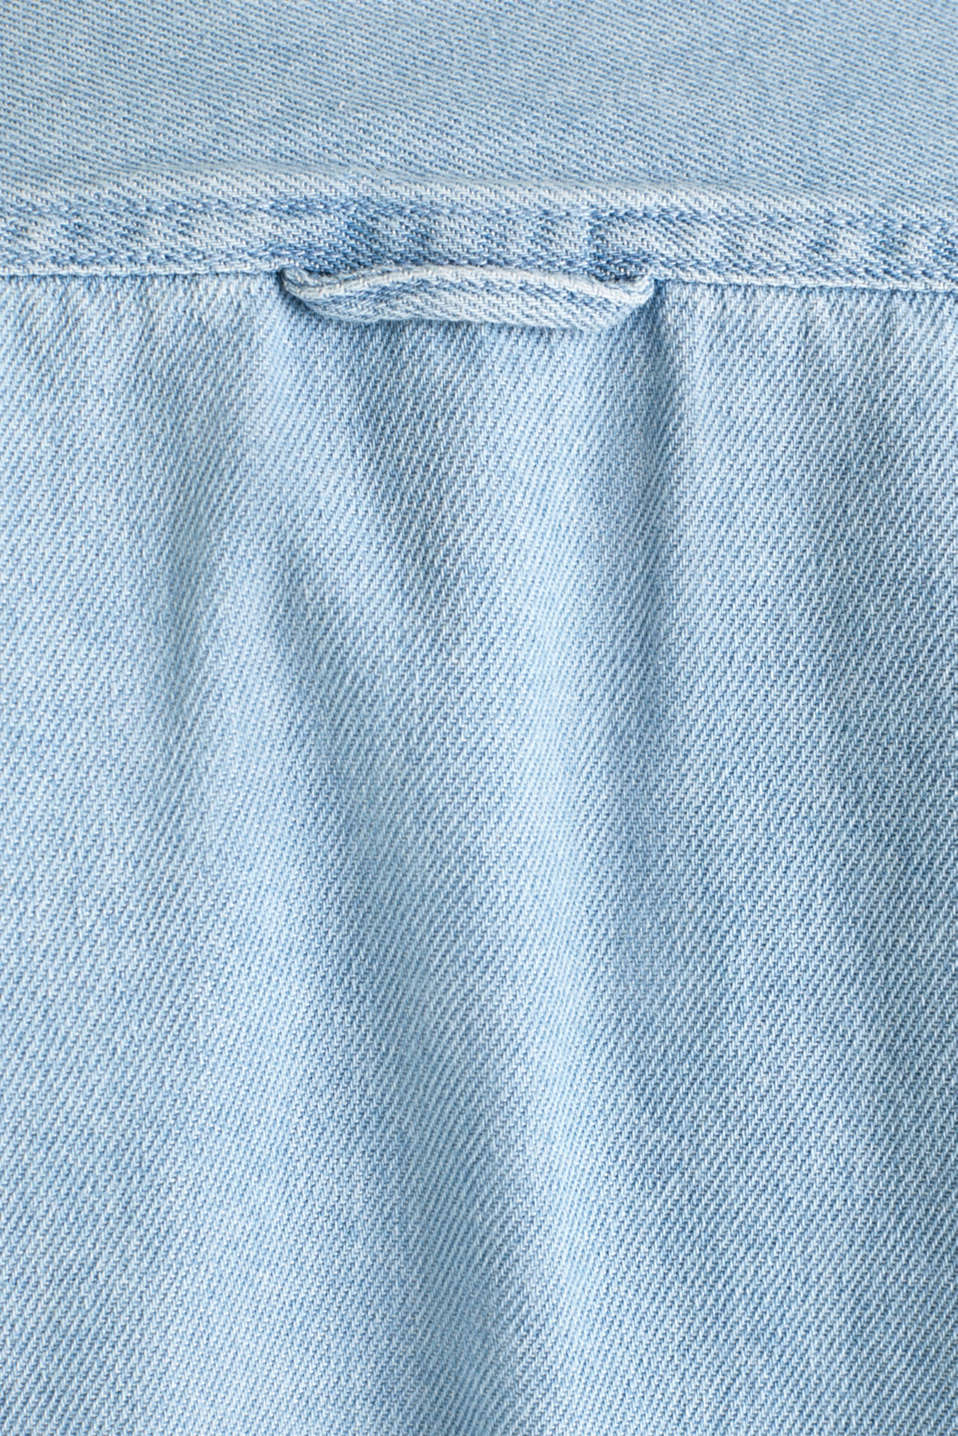 Denim shirt in 100% cotton, BLUE LIGHT WASH, detail image number 4